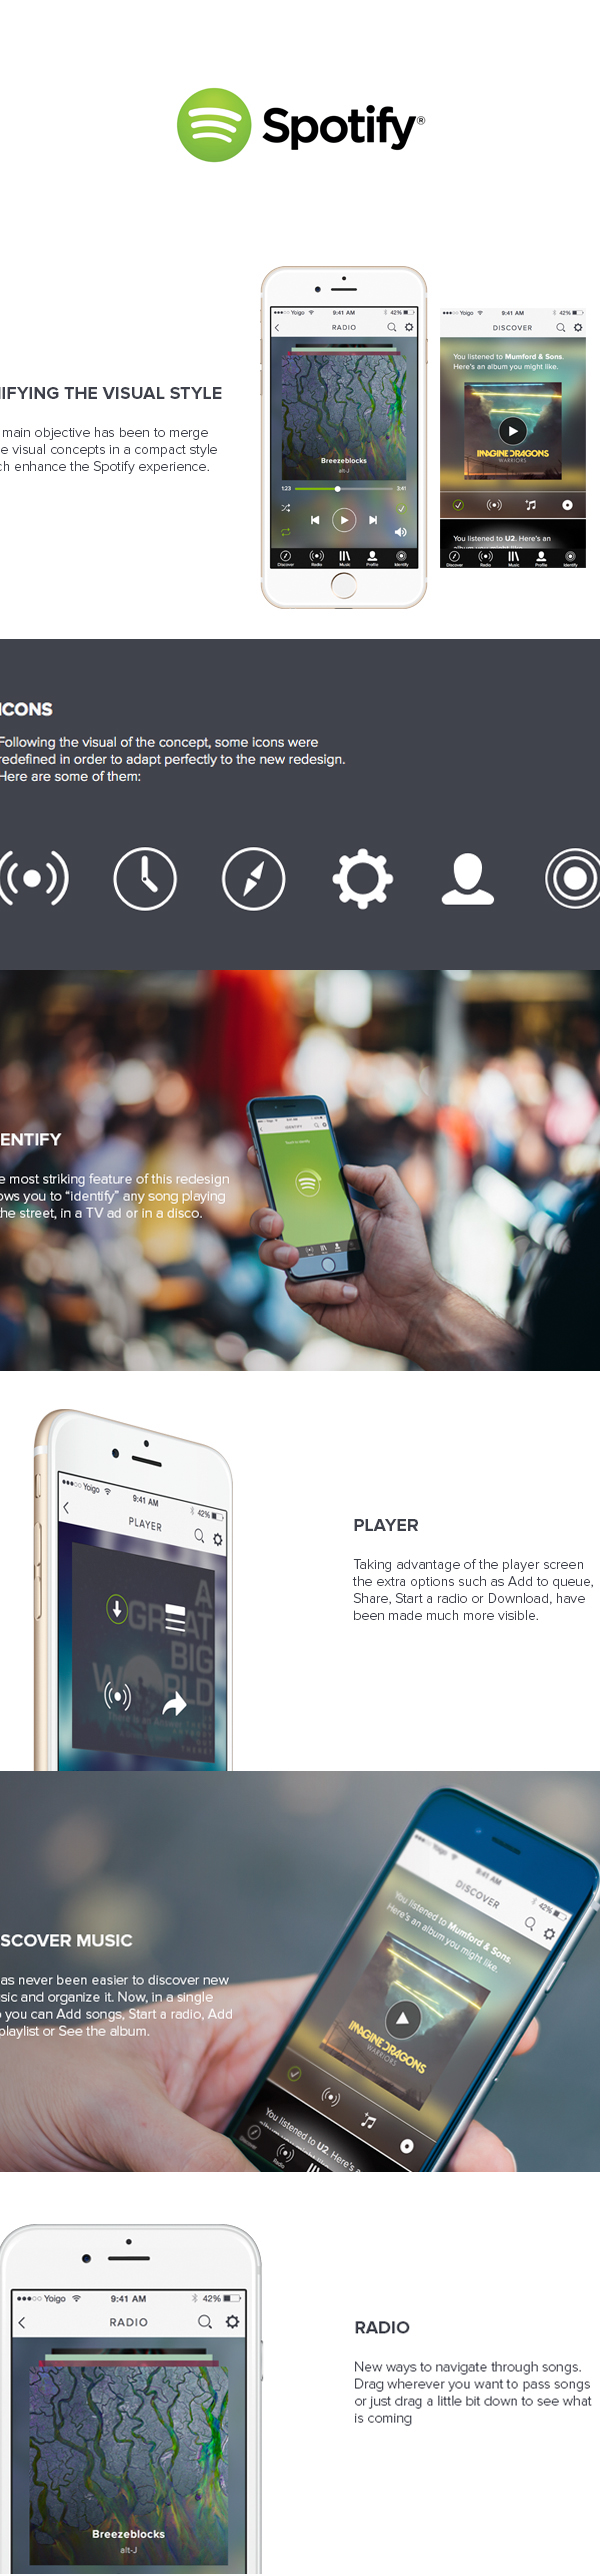 Spotify - Redesign on Behance